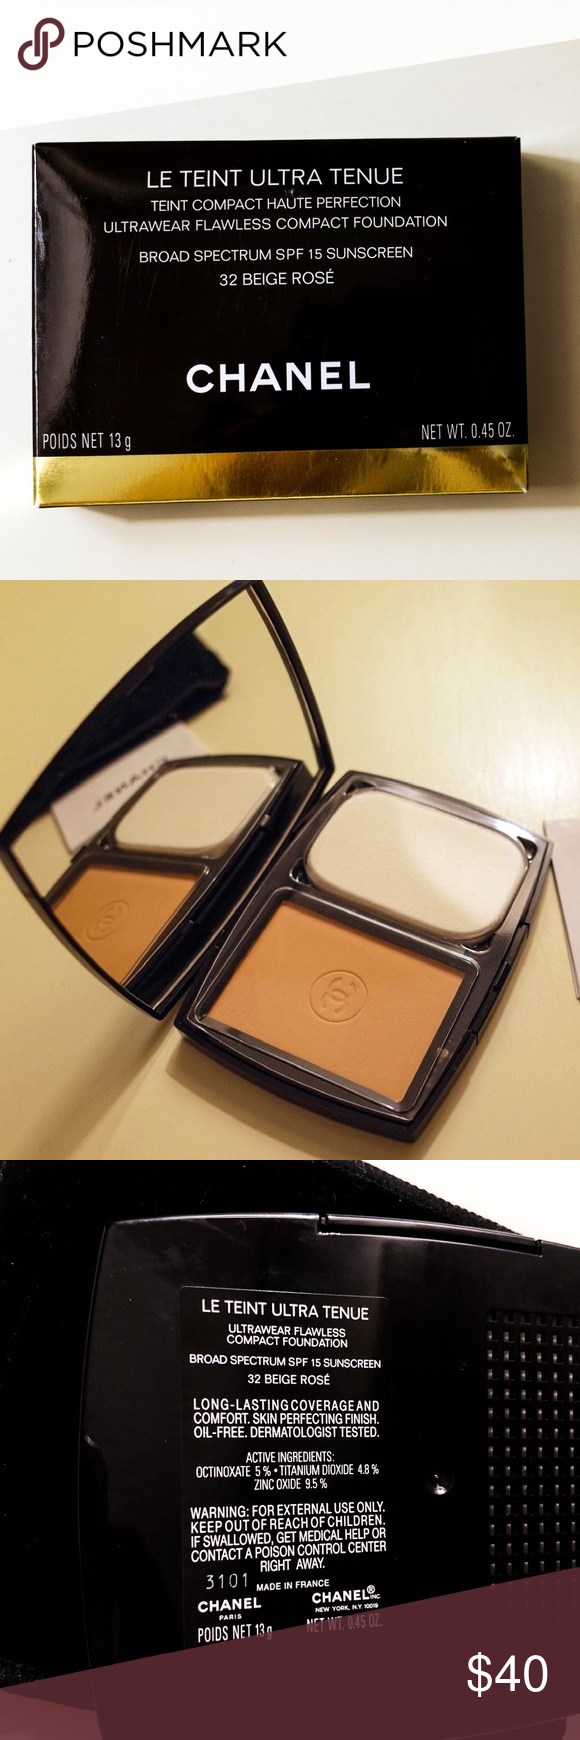 Chanel NEW Le Teint Ultra Tenue compact foundation NEW Le